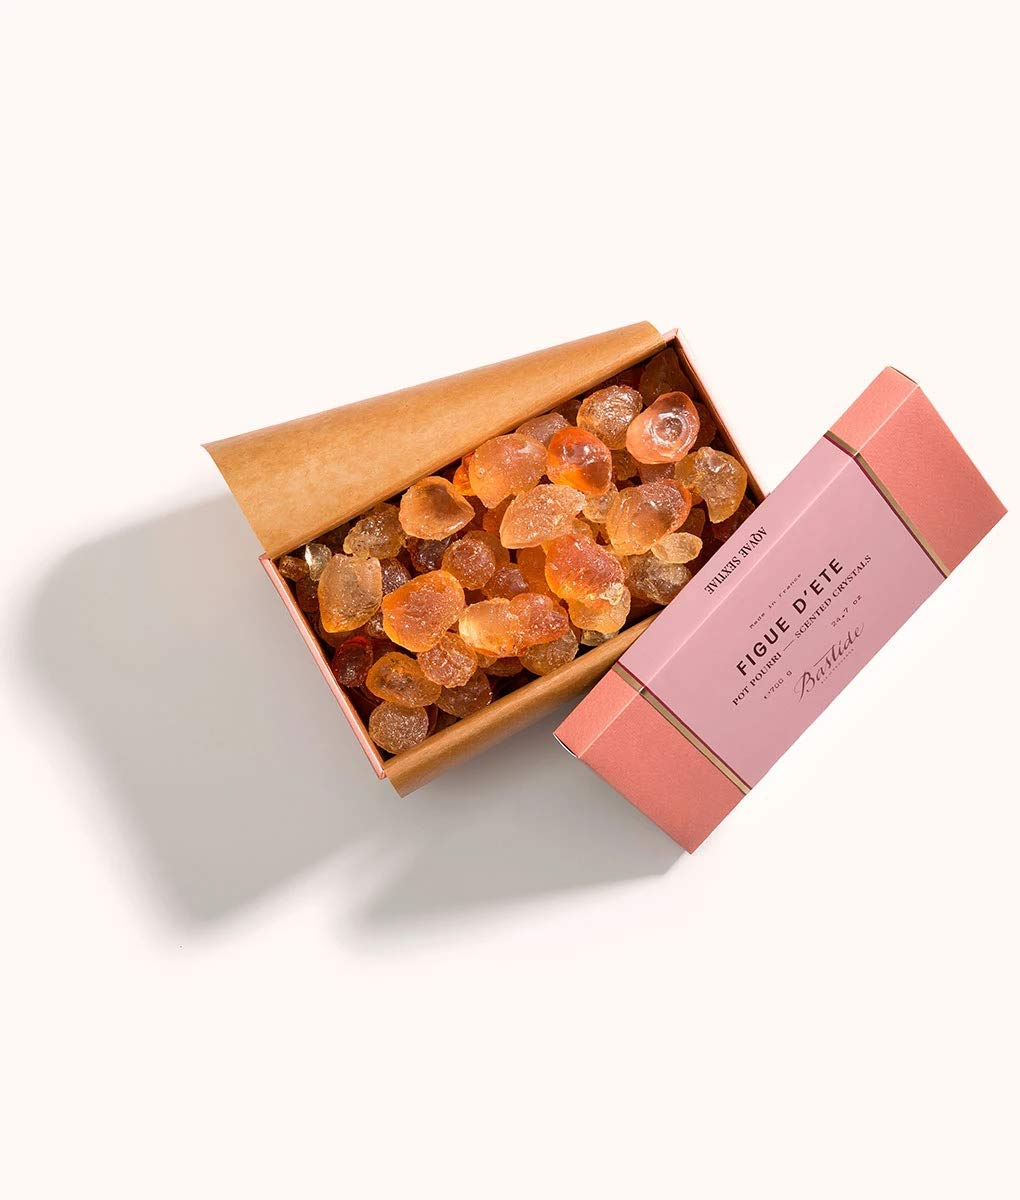 Bastide Figue D'Ete Potpourri Scented Crystals 24.7oz (700g) by Bastide